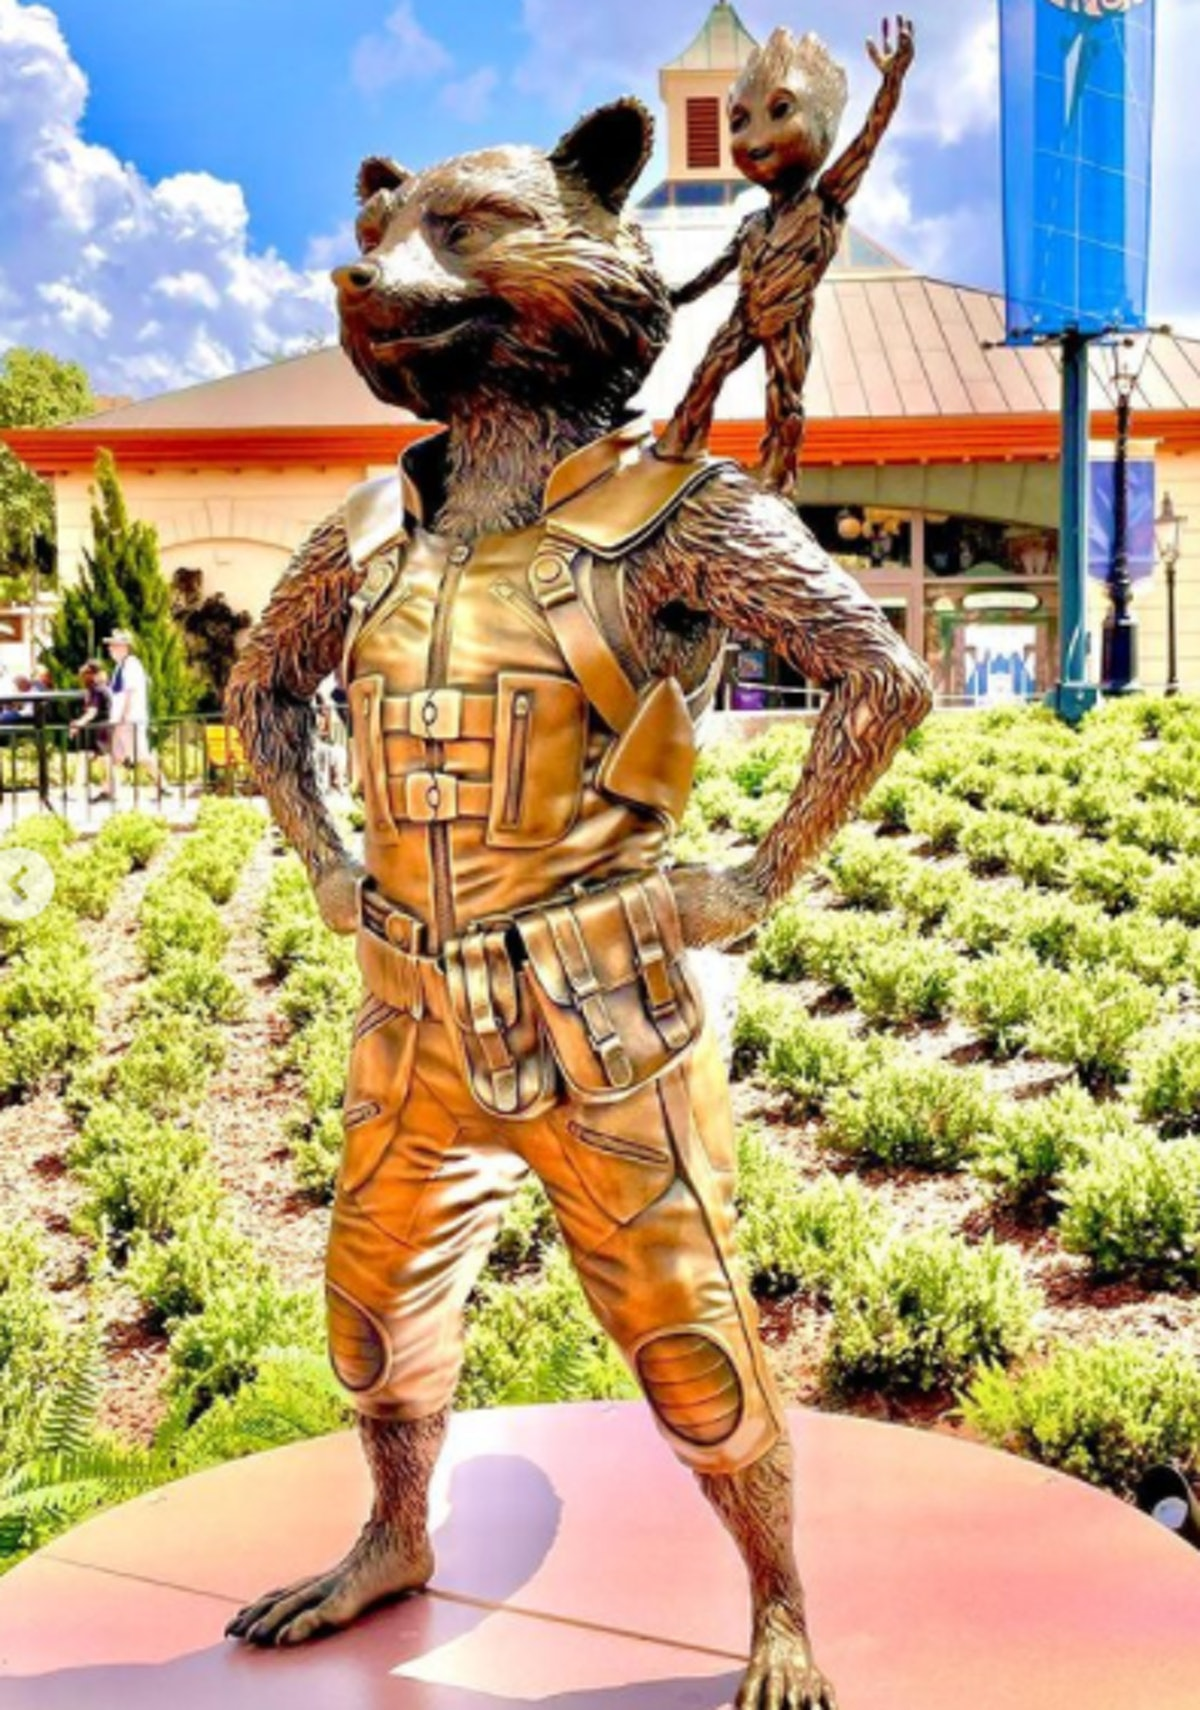 These photos of Disney's 50th anniversary gold character statues include Rocket and Groot from 'Guar...